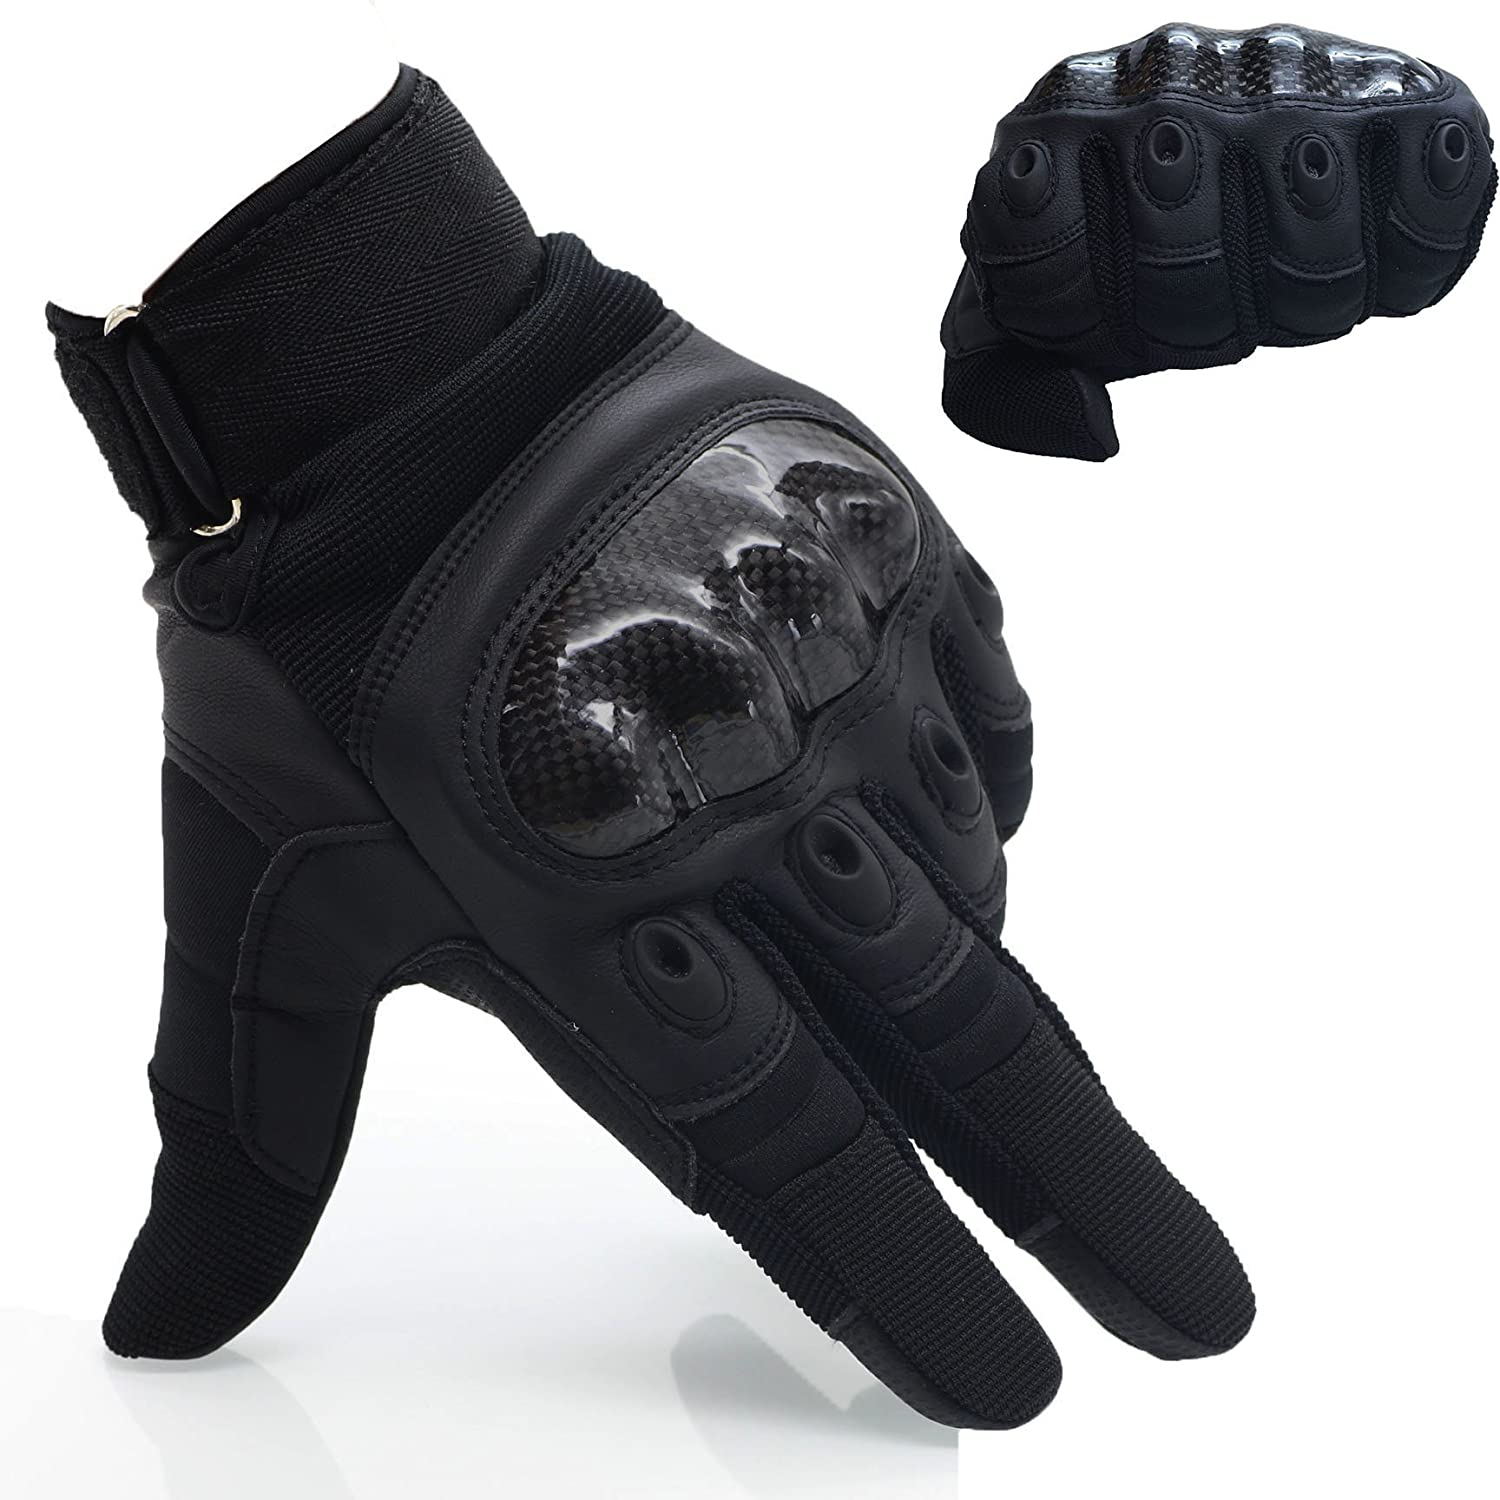 Motorcycle leather gloves amazon - Motorcycle Leather Gloves Amazon 0